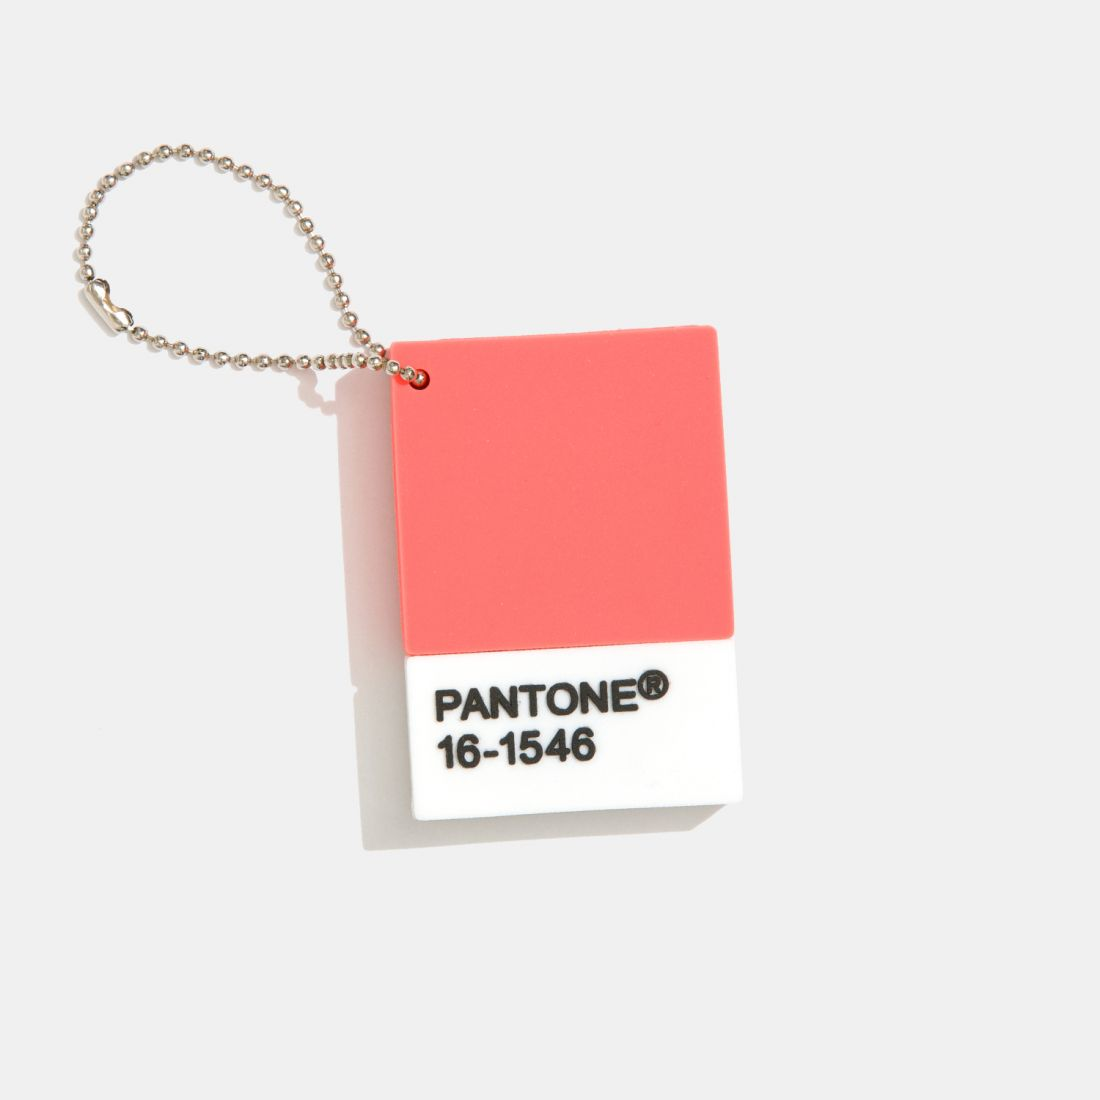 Pantone's 2019 Colour of the Year is Living Coral | Creative